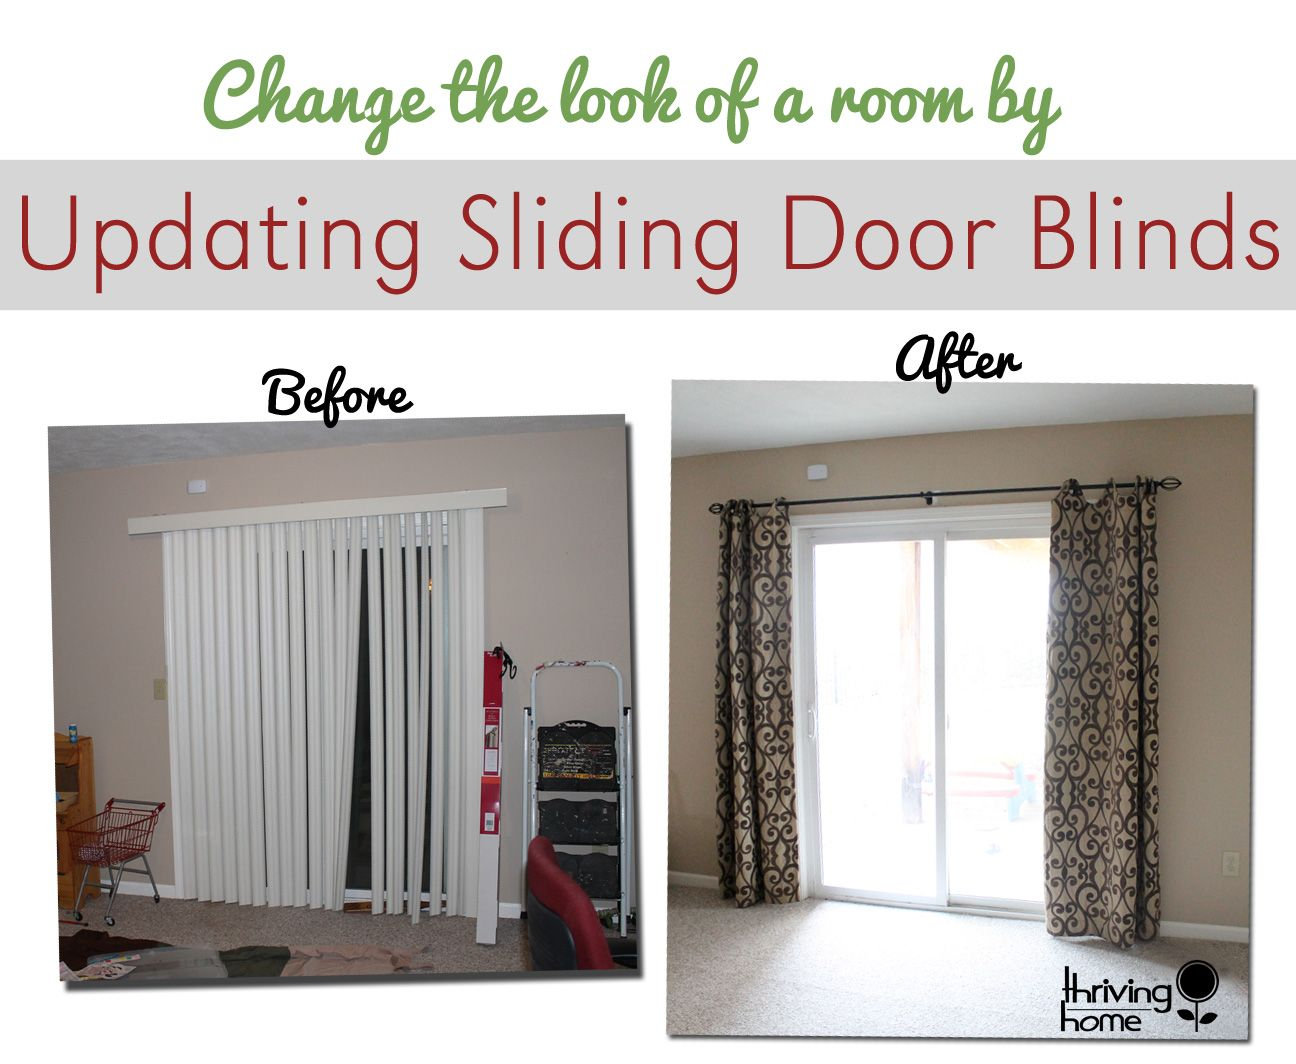 Slide door blinds - Super Easy Home Update Replace Those Sliding Blinds With A Curtain Rod And Curtains